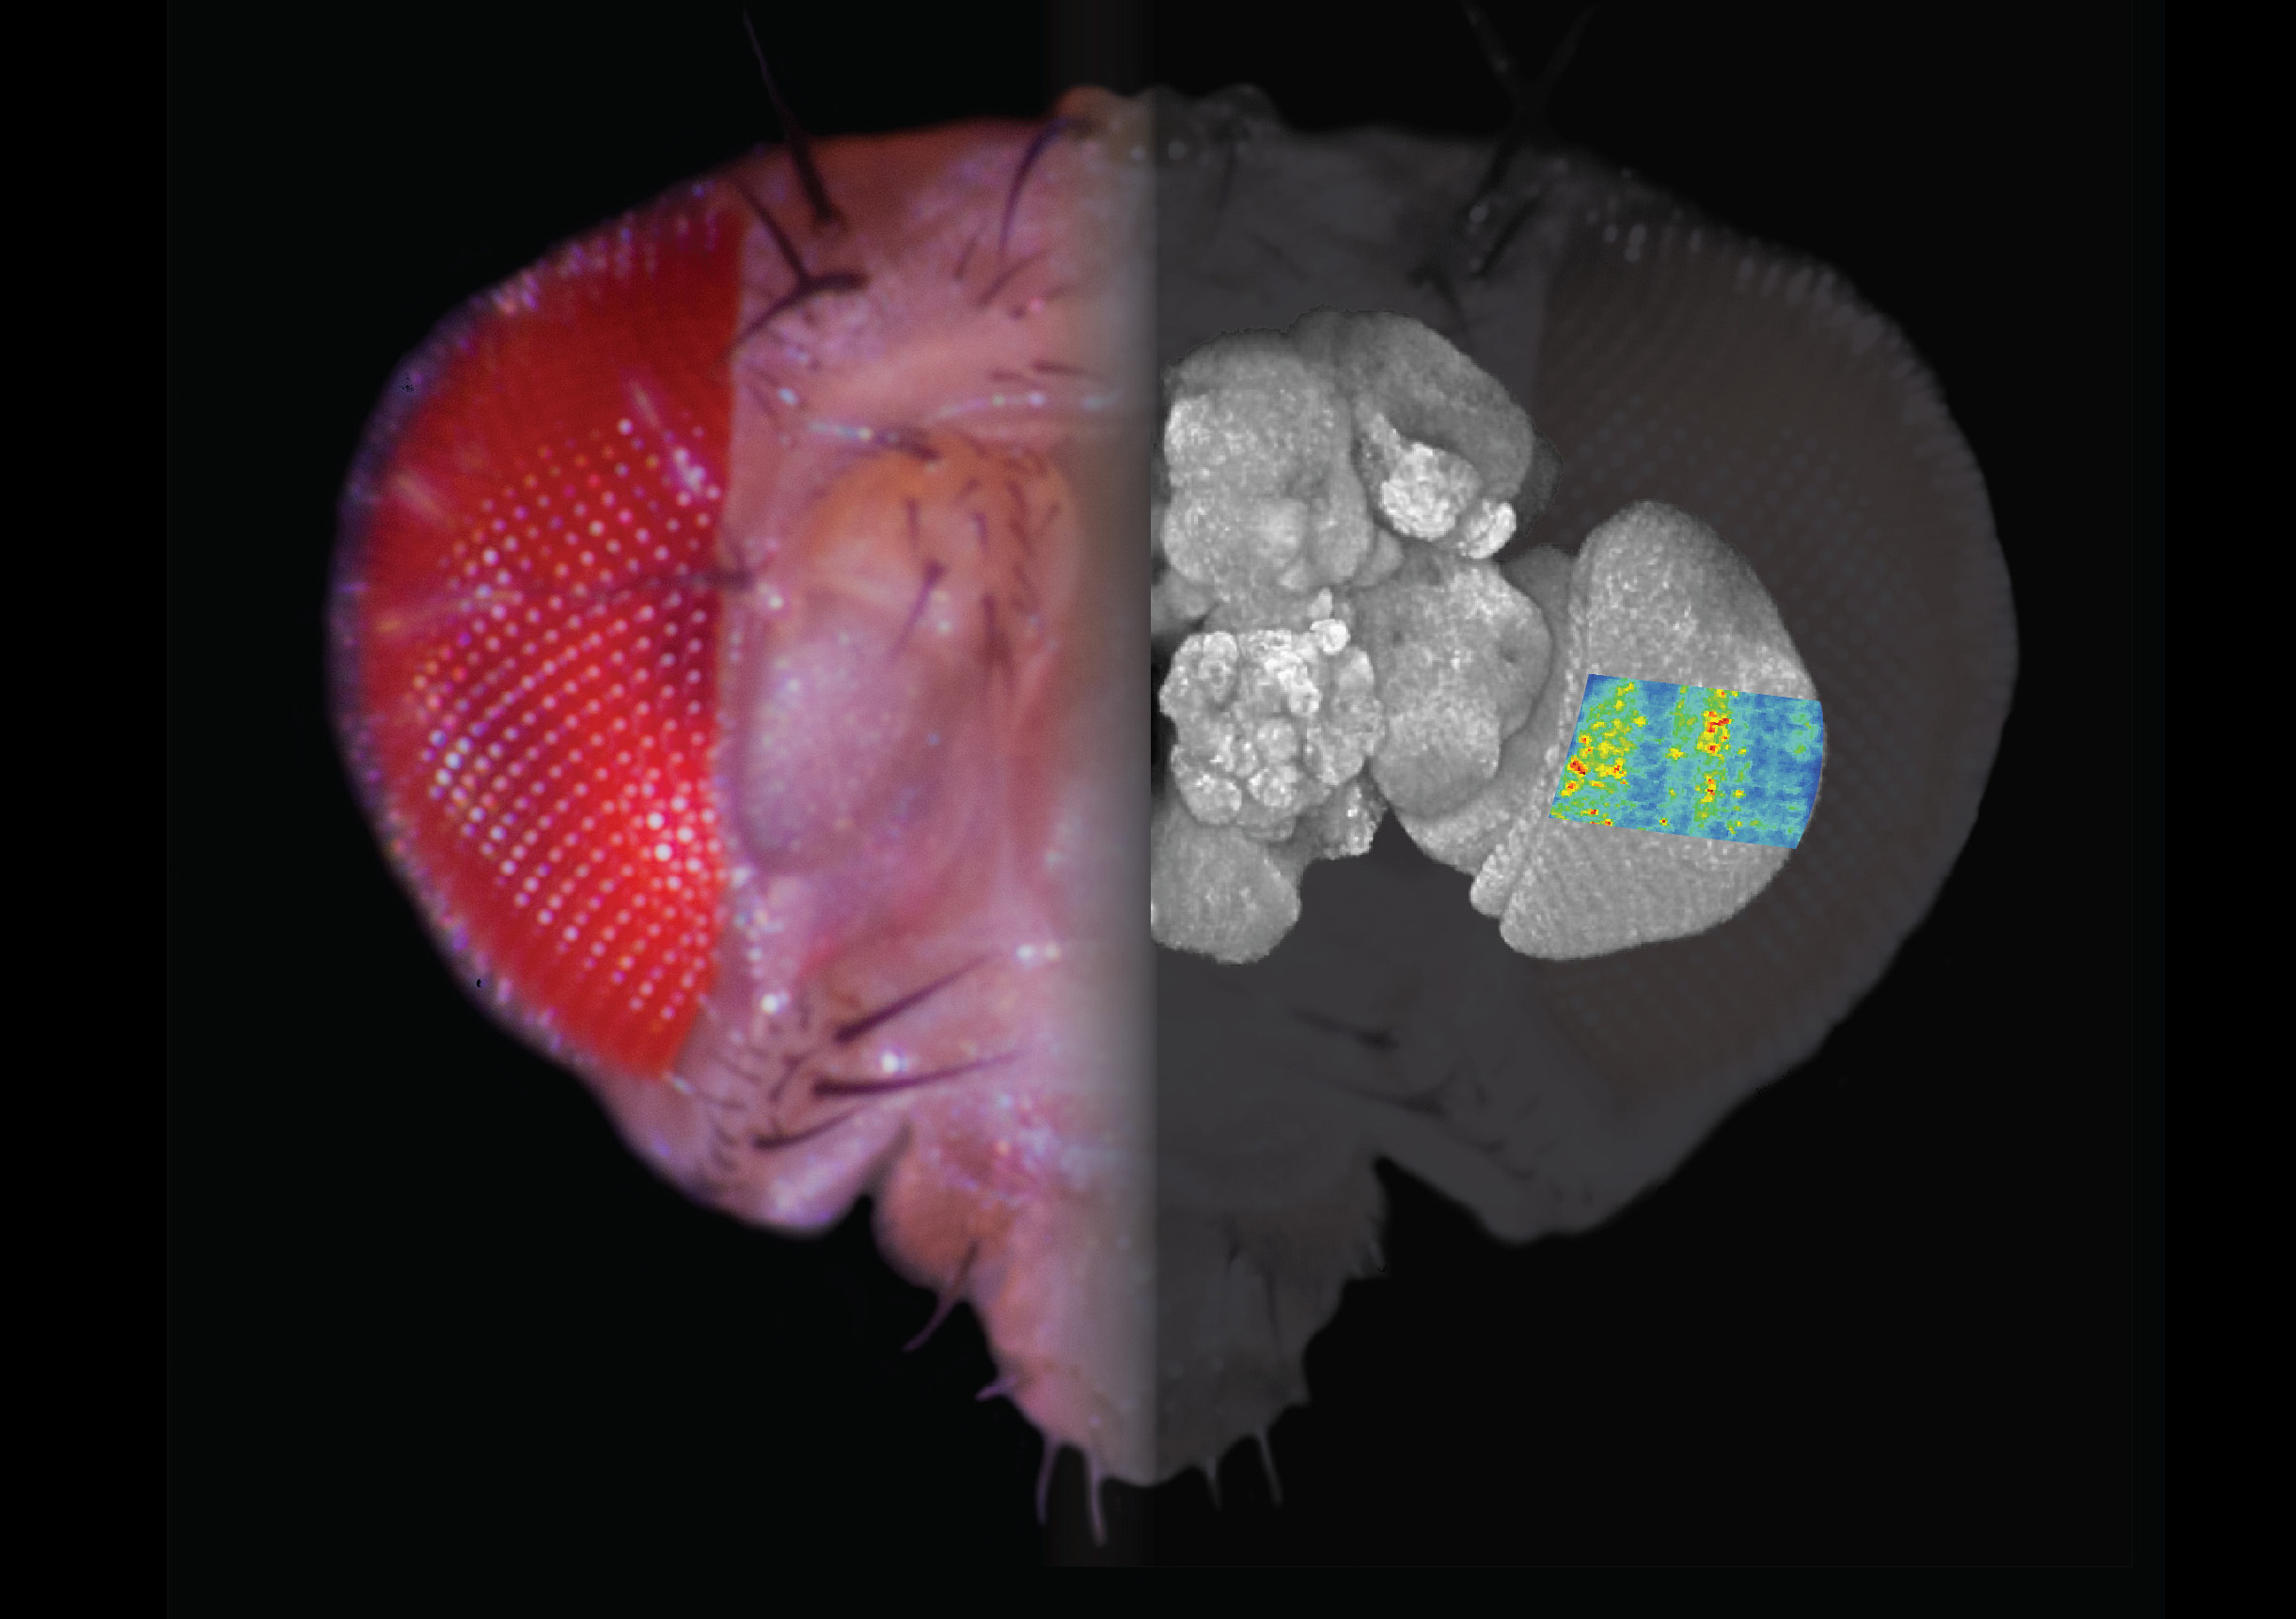 This composite image shows a fly's head, a projection of its brain, and a two-photon calcium image of stimulus-provoked responses in the visual system.